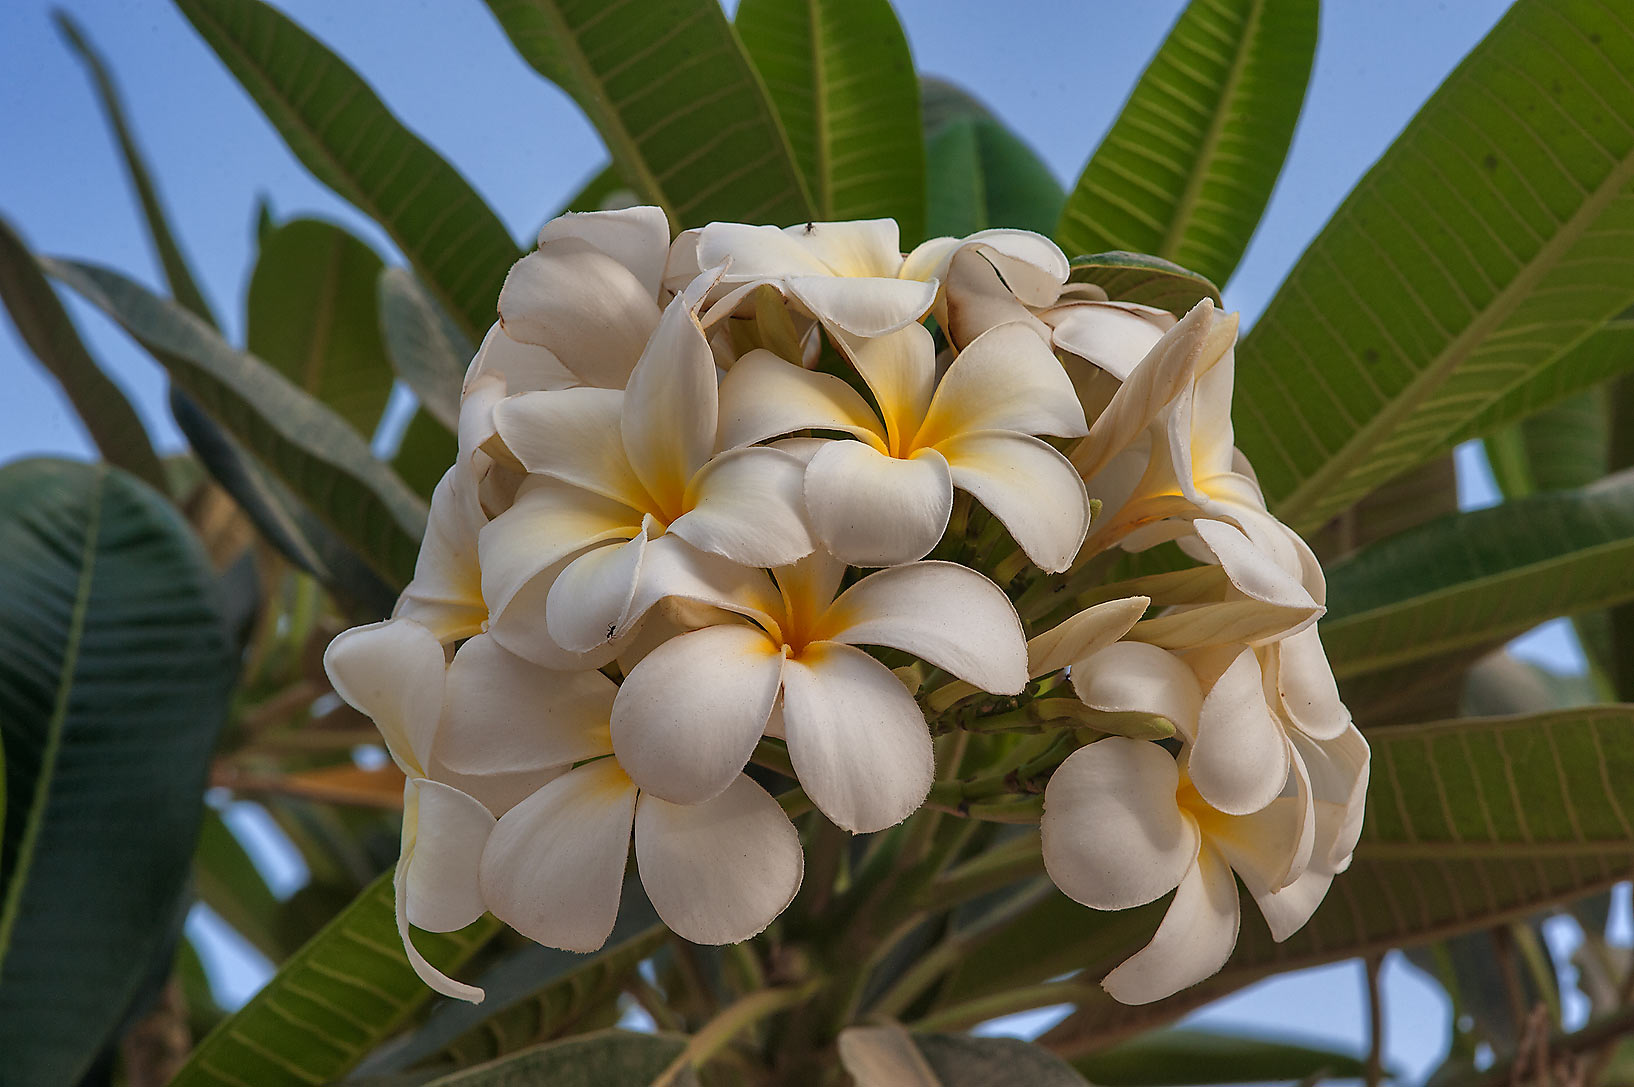 Pagoda tree (Plumeria alba) on Al Khair St. in Onaiza area. Doha, Qatar